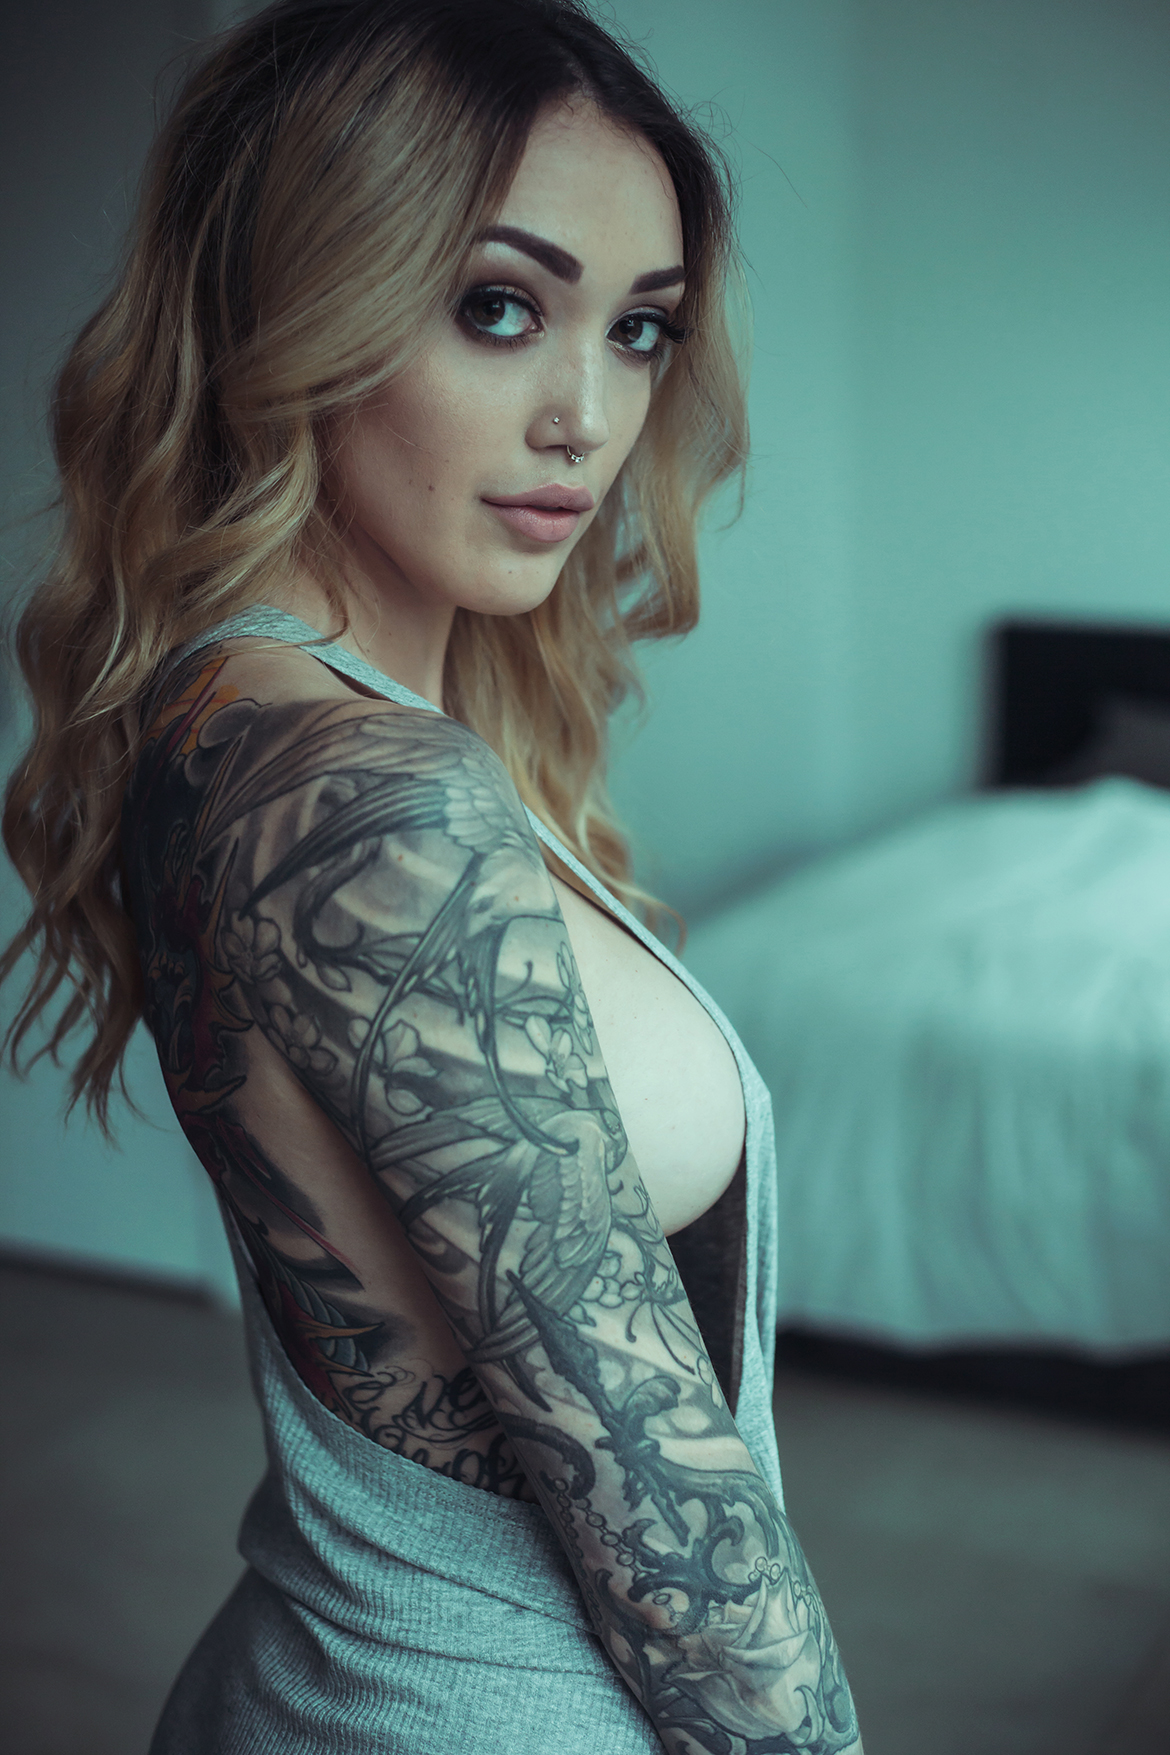 Inked – Feat Ashley Castaner